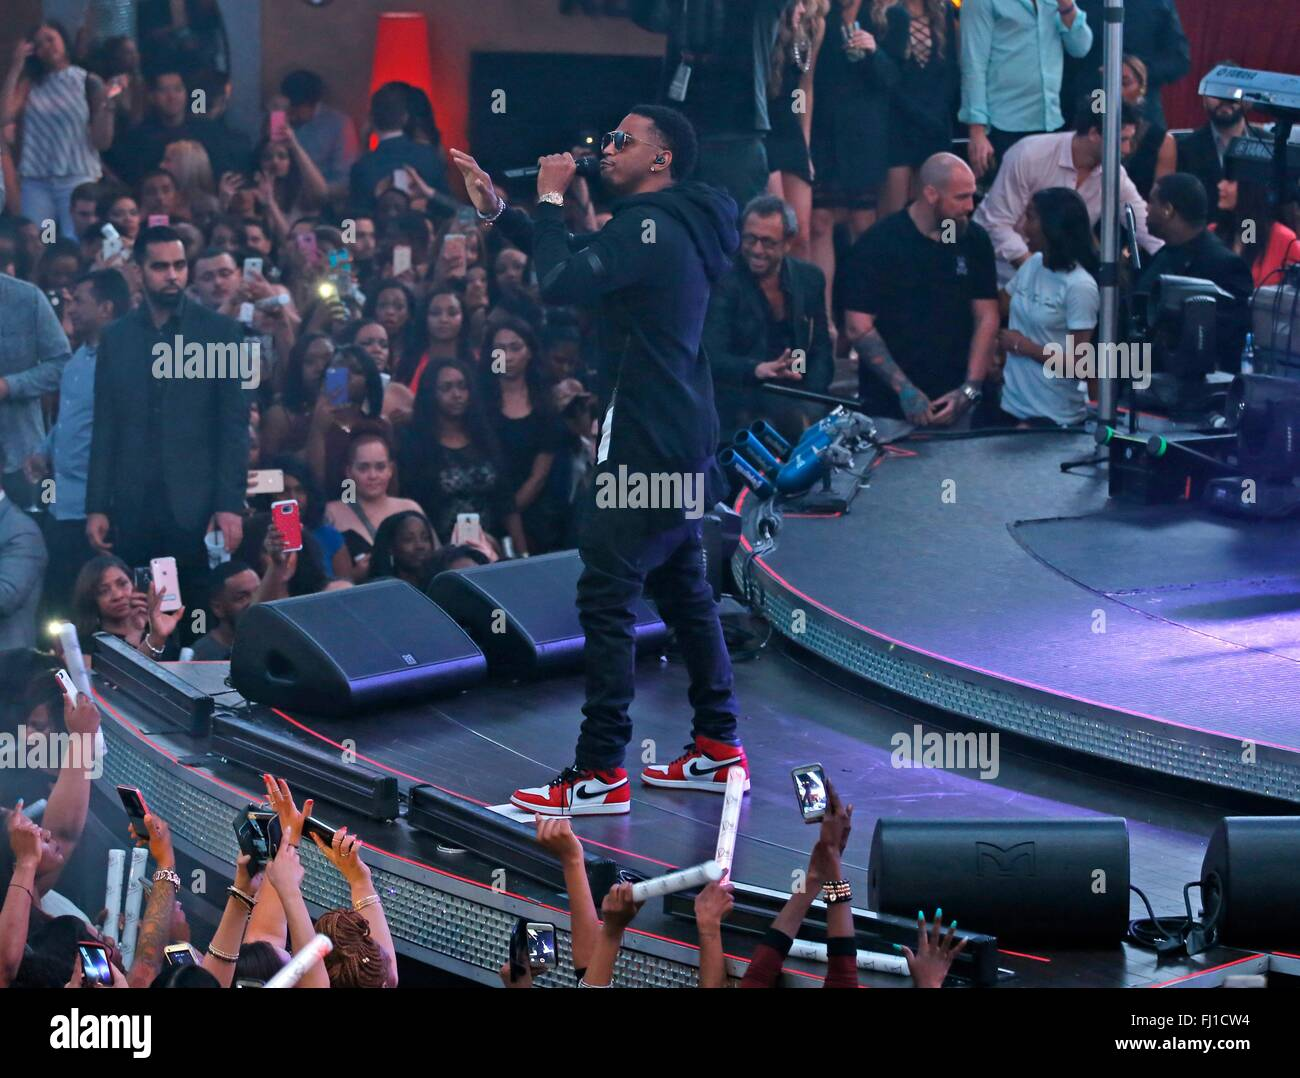 Las Vegas, NV, USA. 27th Feb, 2016. Trey Songz in attendance for Trey Songz Performs 'To Whom It May Concern' - Stock Image